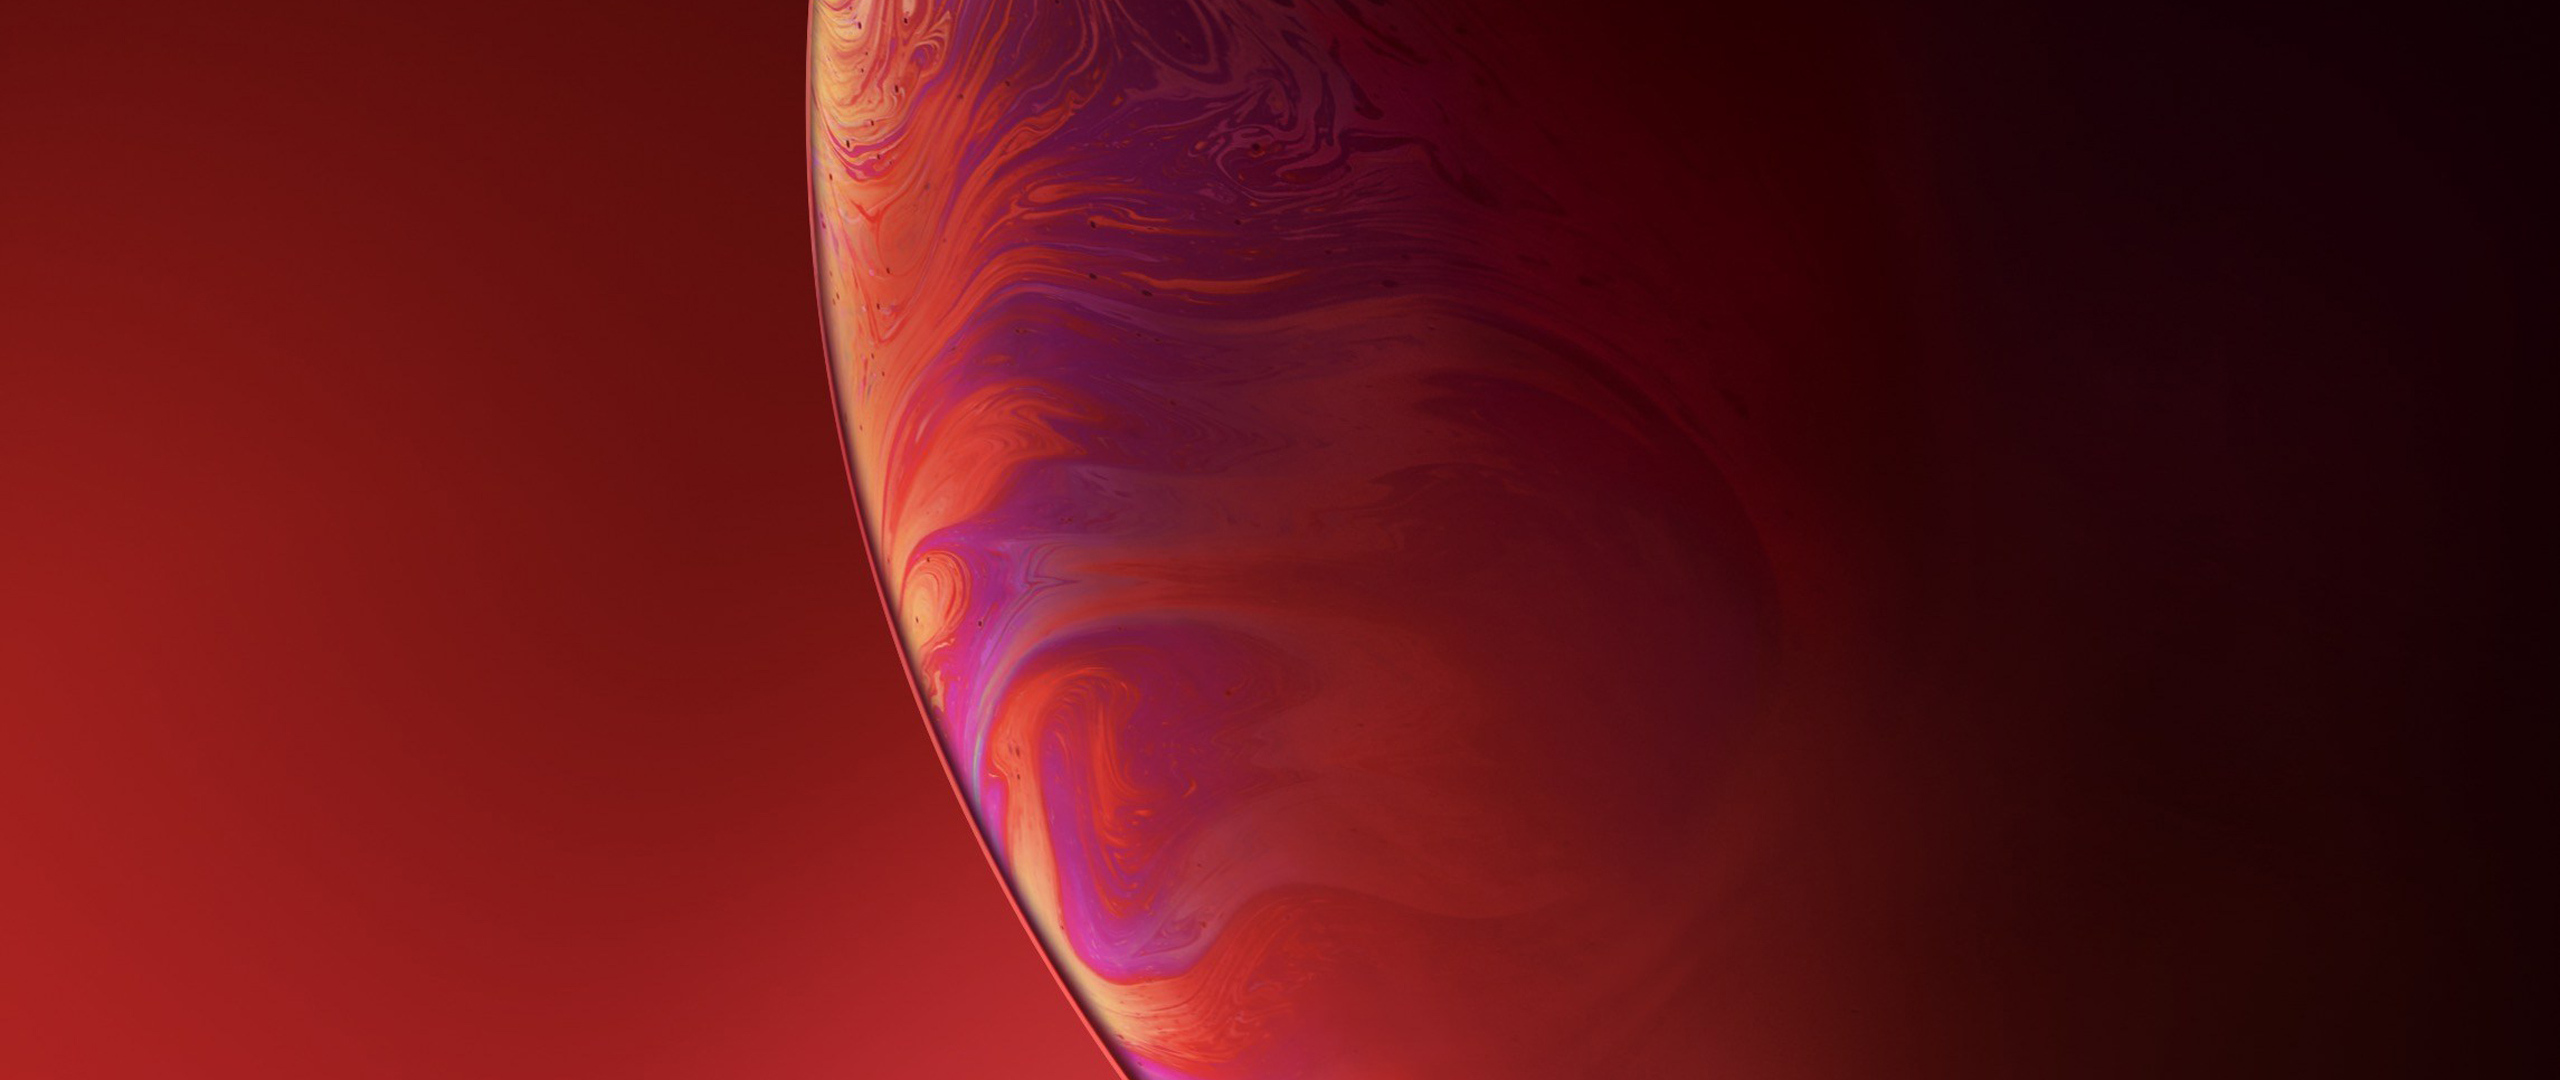 2560x1080 Iphone Xr Double Bubble Red 2560x1080 Resolution Hd 4k Wallpapers Images Backgrounds Photos And Pictures